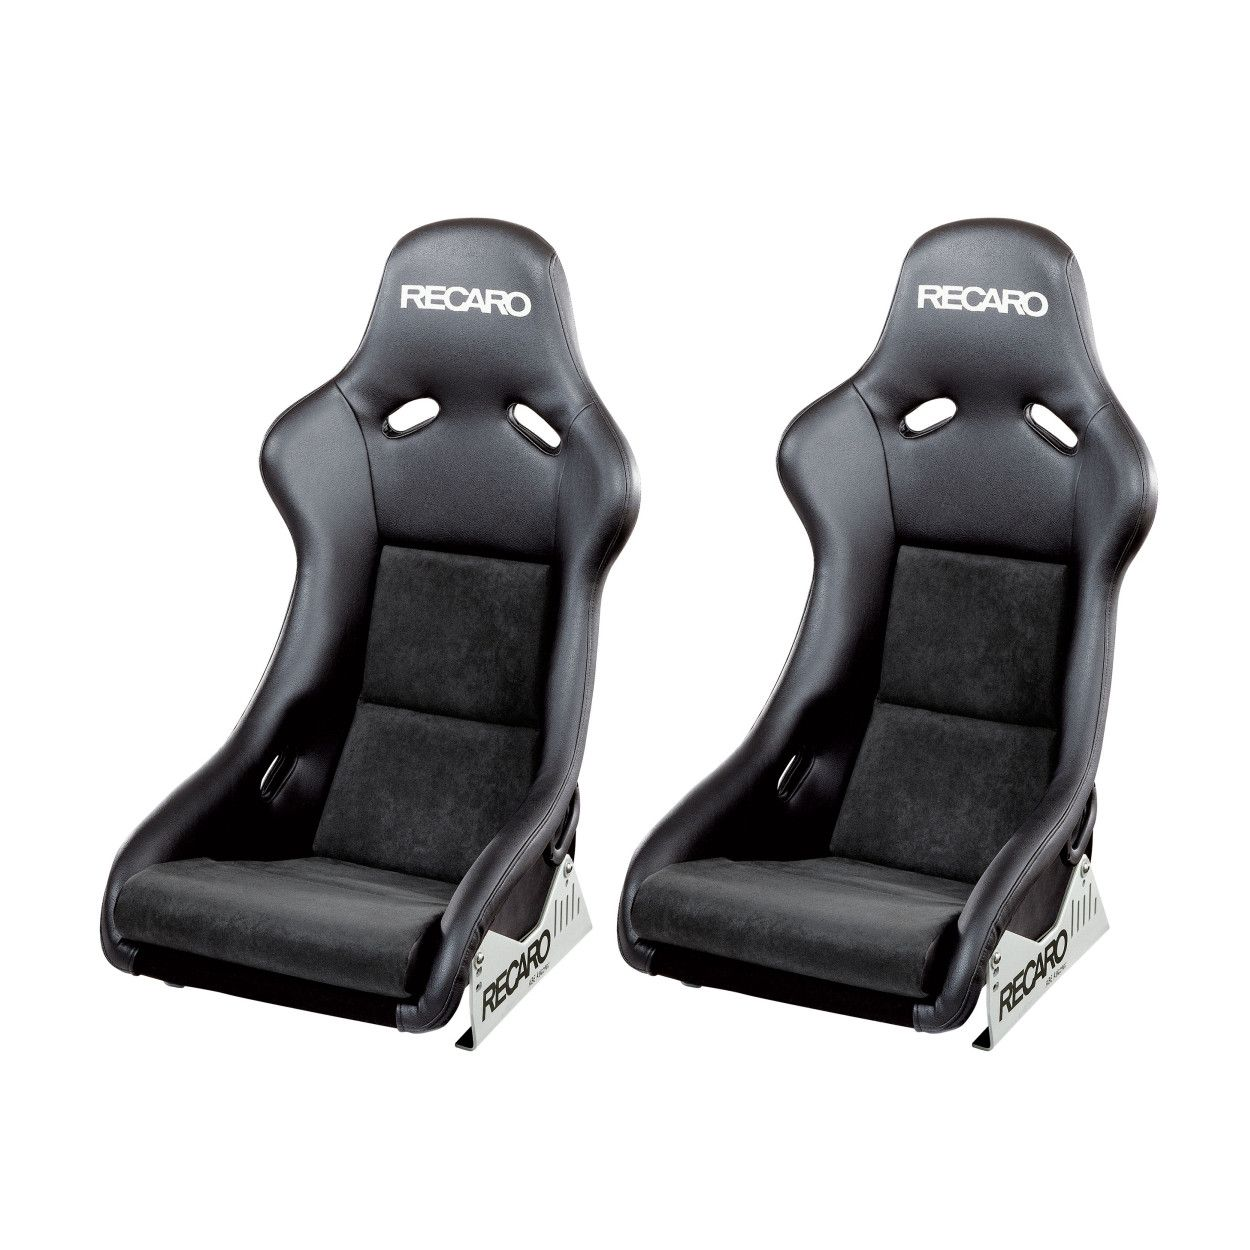 2 x Recaro Pole Position ABE Bucket Seats